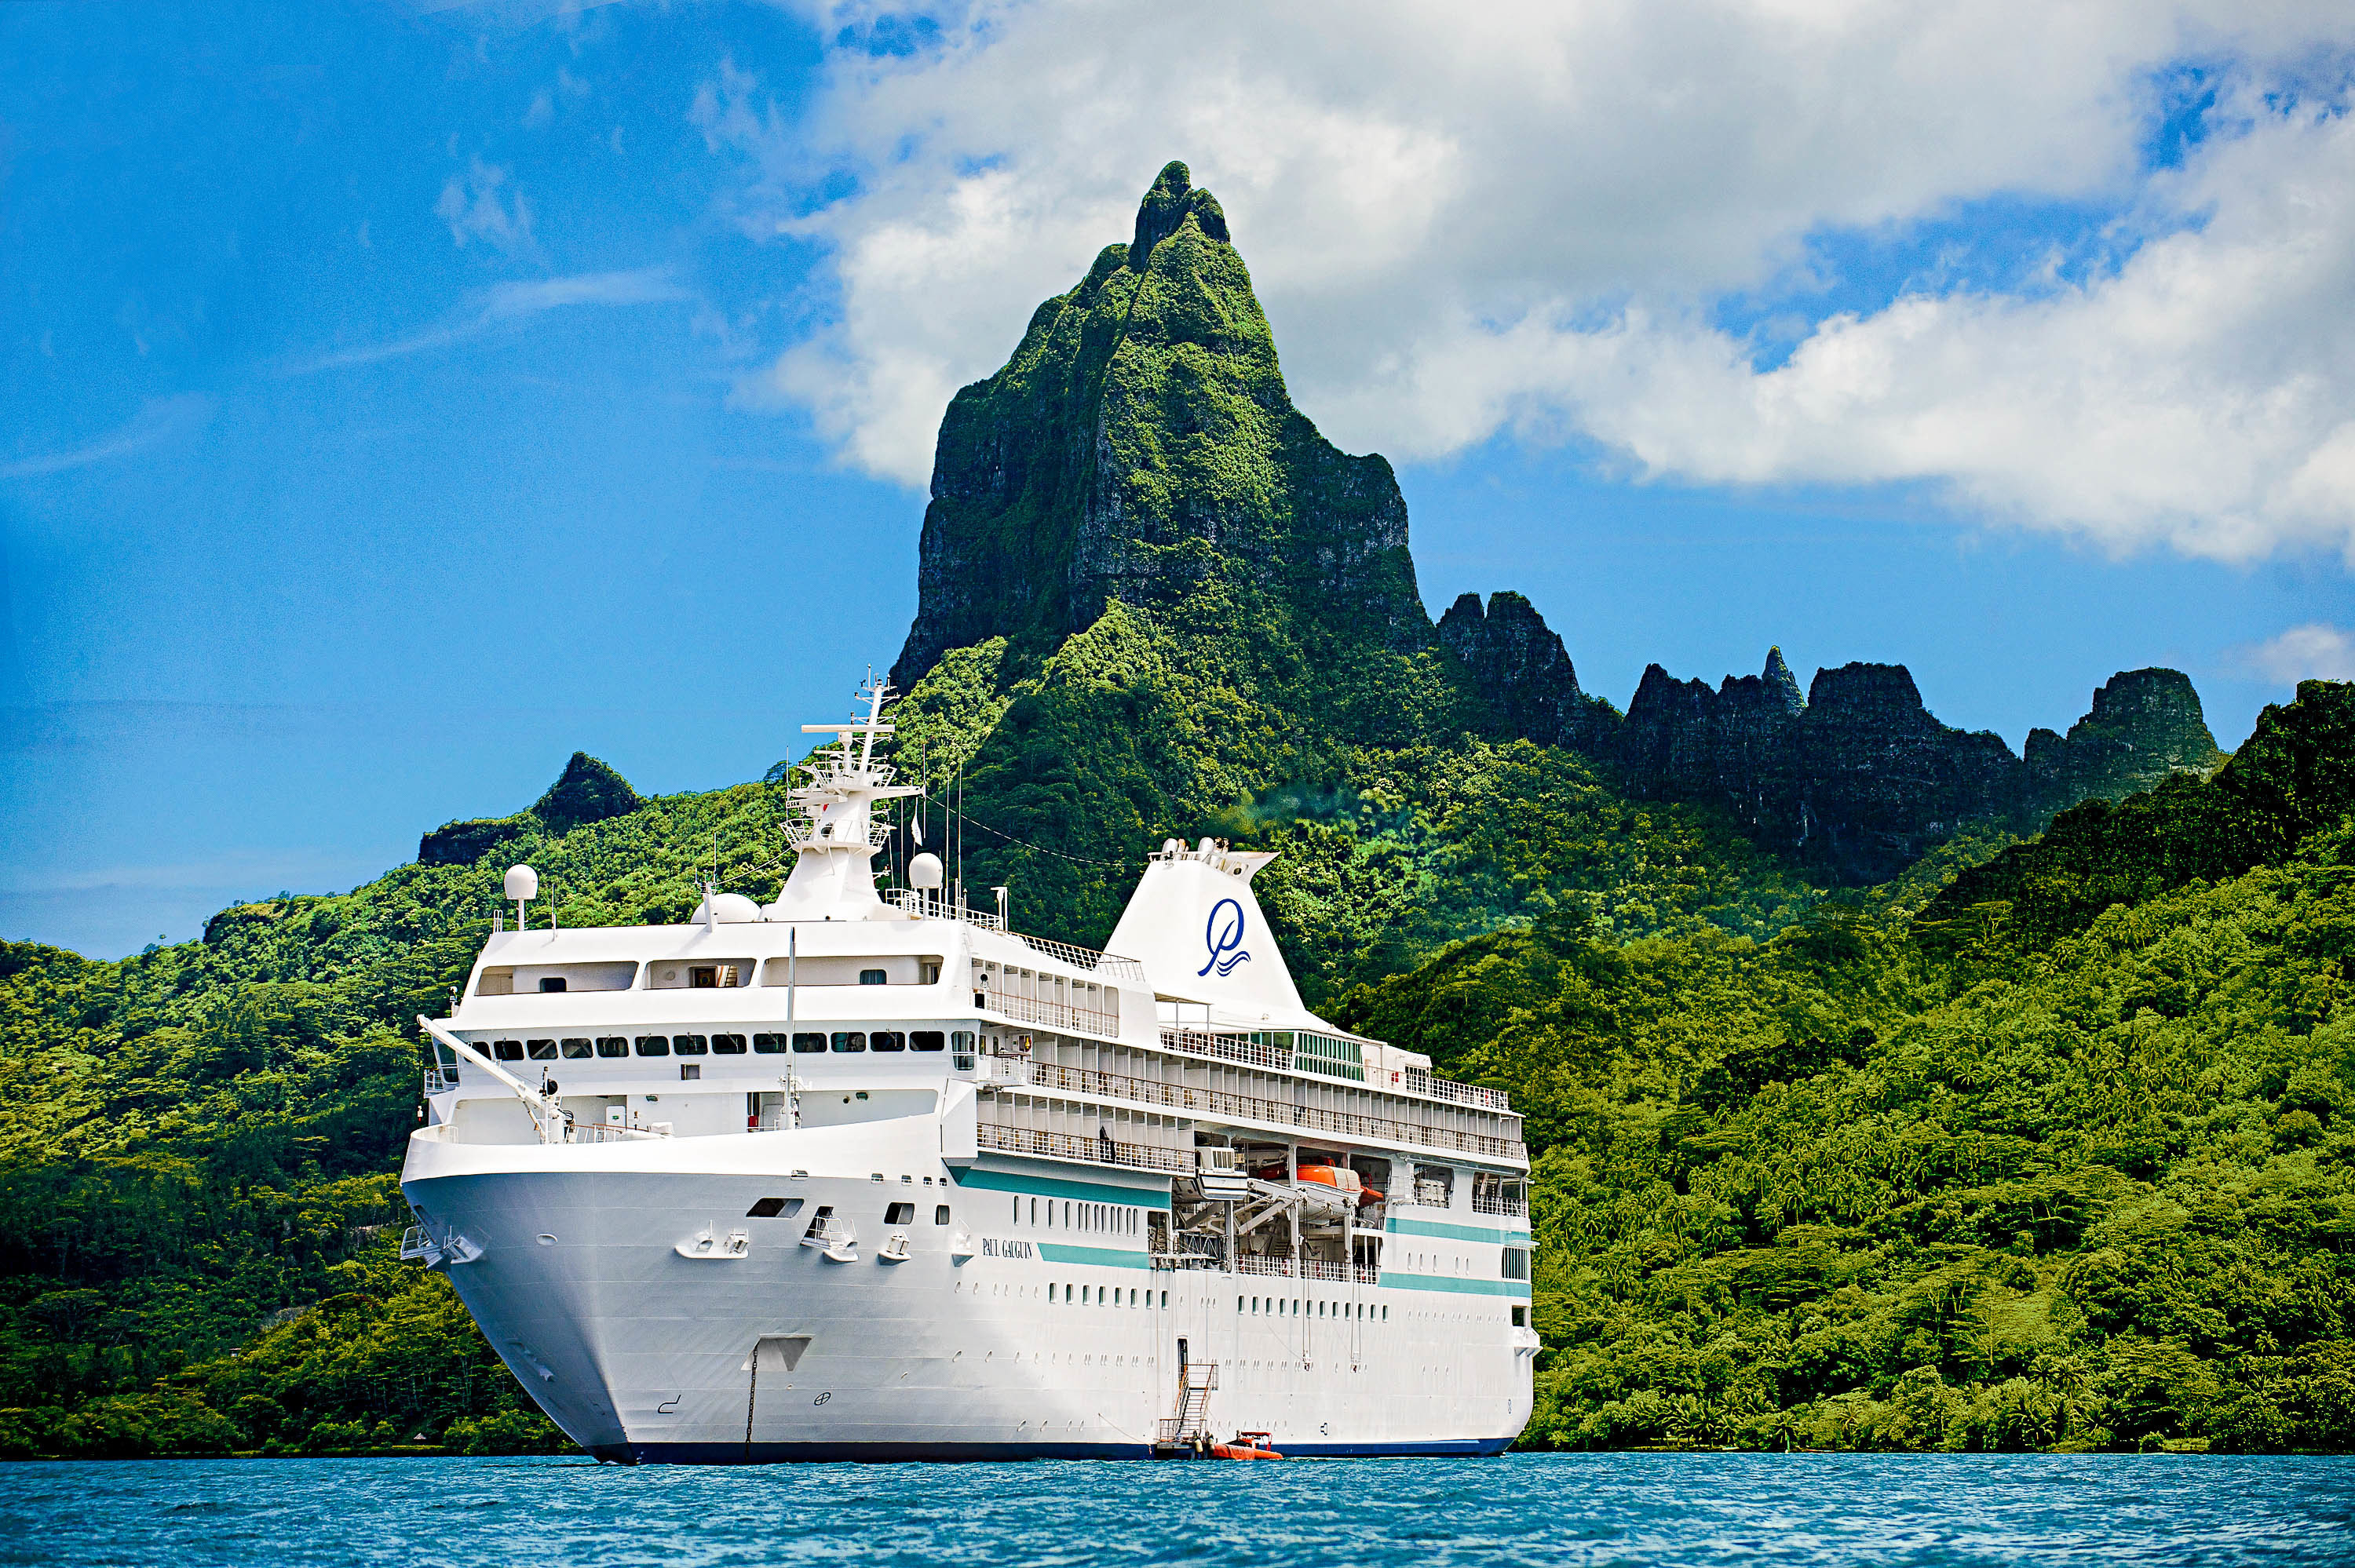 Cruise Travel Luxury Travel Trip Ideas water Boat outdoor Nature water transportation passenger ship cruise ship promontory sky watercraft ship mountain tourism mount scenery Sea ocean liner yacht bay fjord motor ship landscape